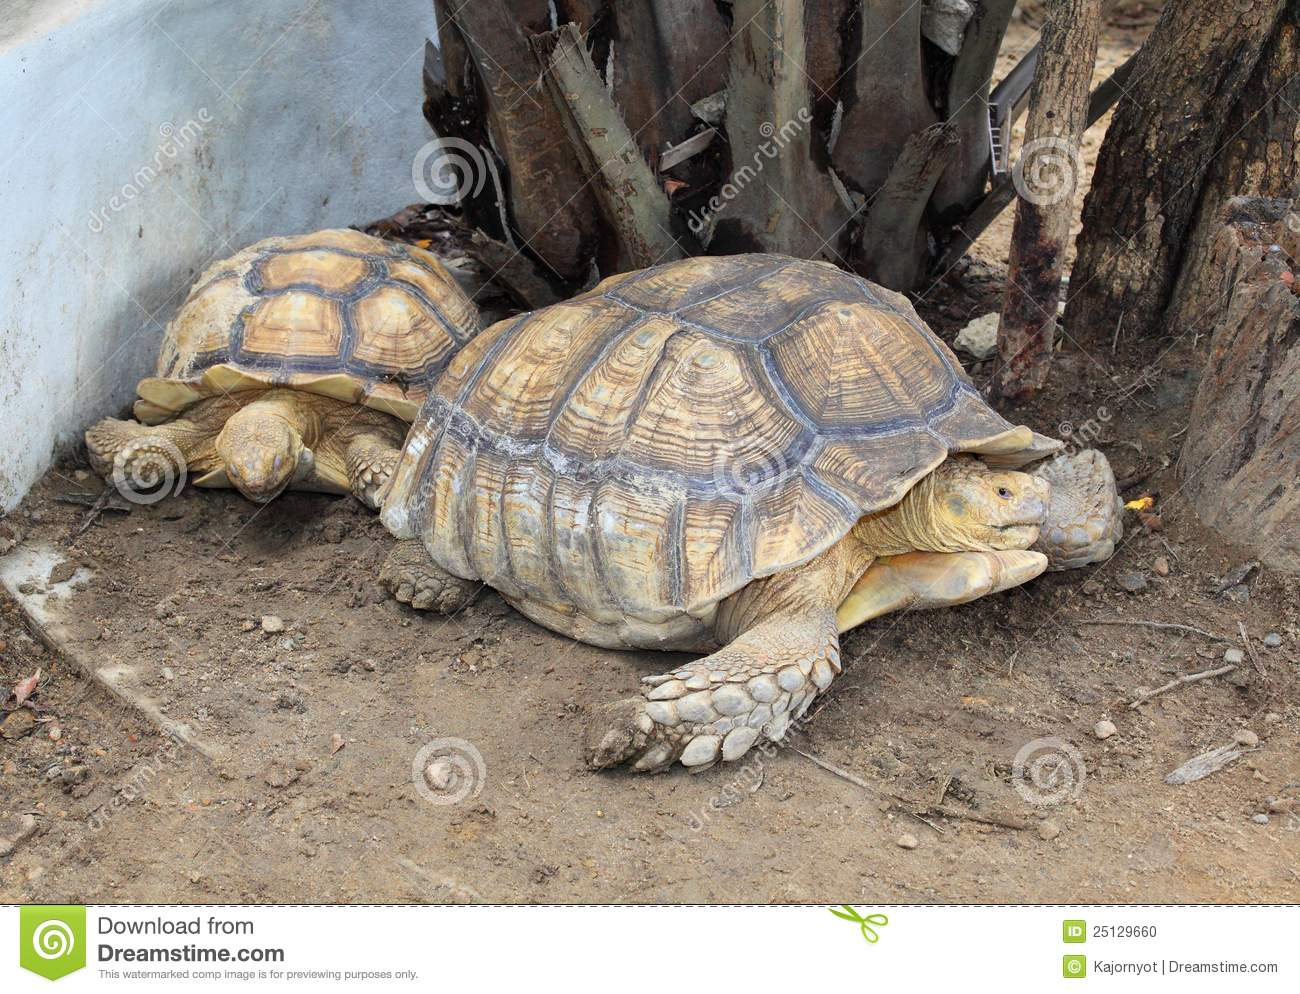 Aldabra Giant Tortoise clipart #16, Download drawings